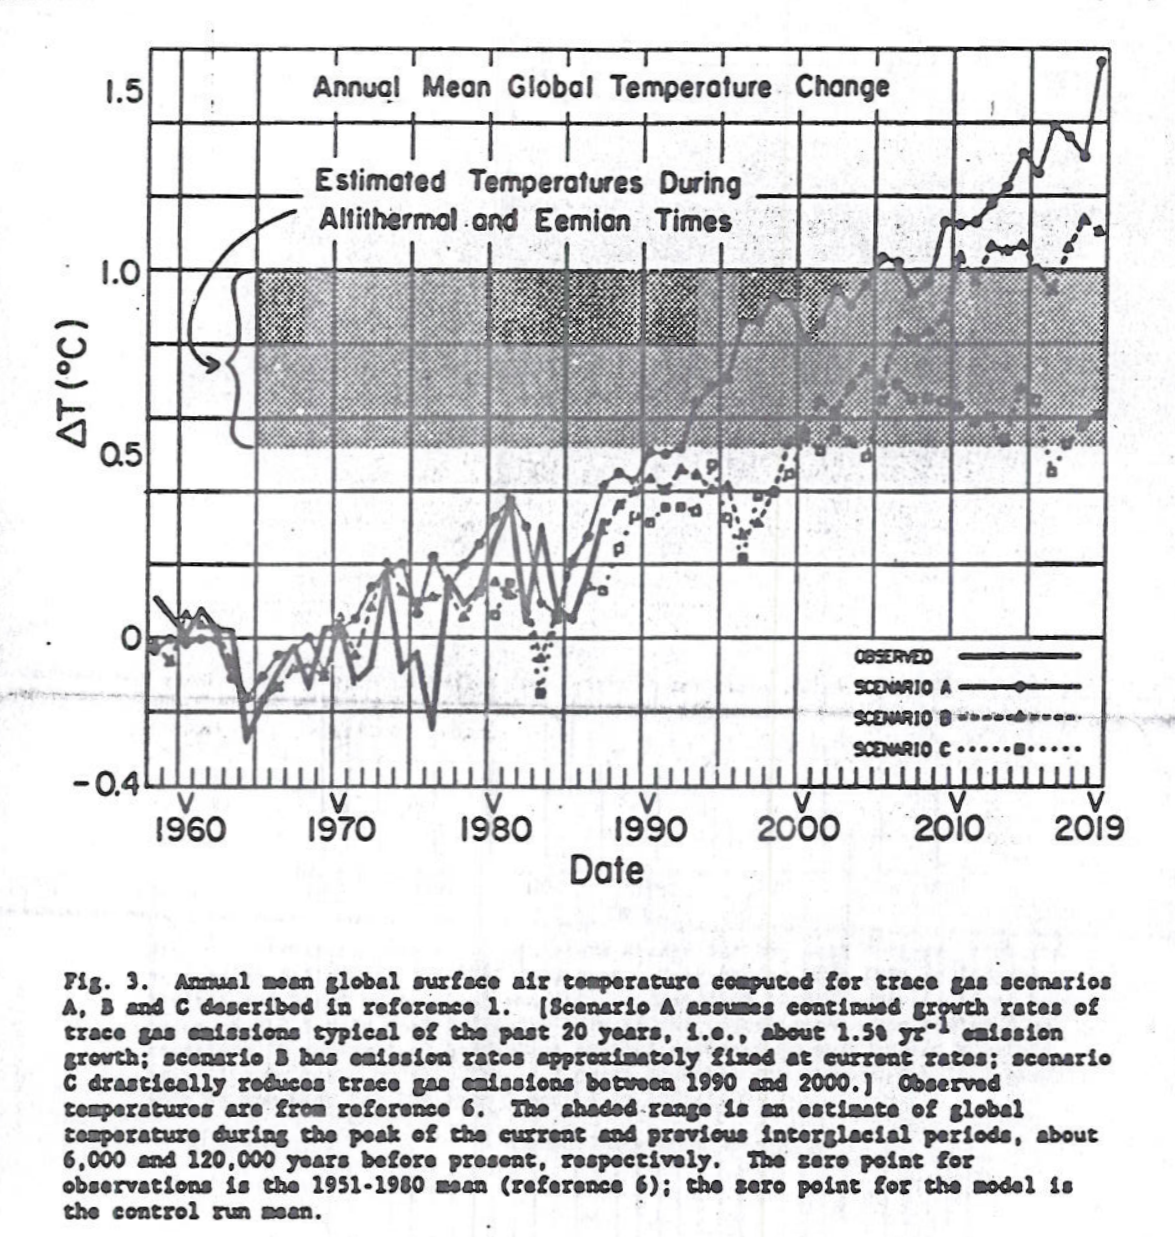 Figure 3, Annual Mean Global Temperature Change